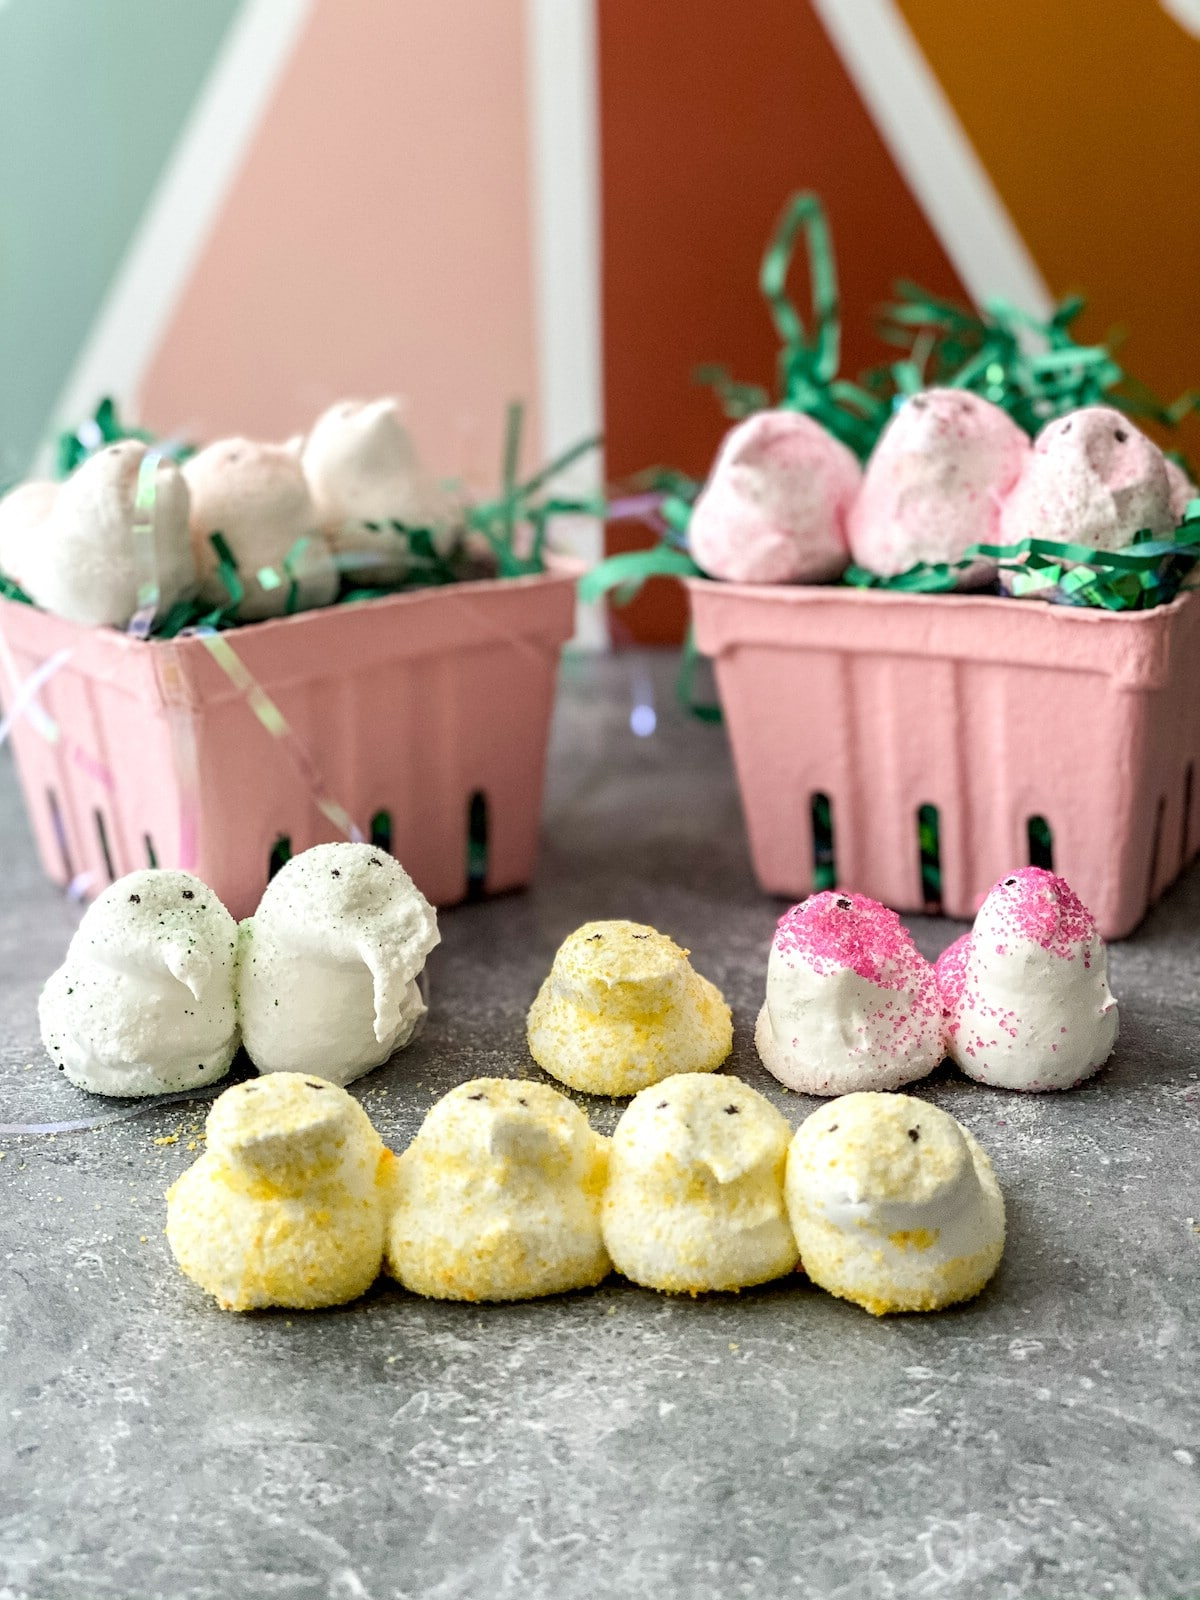 Two pink baskets with fake grass holding pink marshmallow chicks